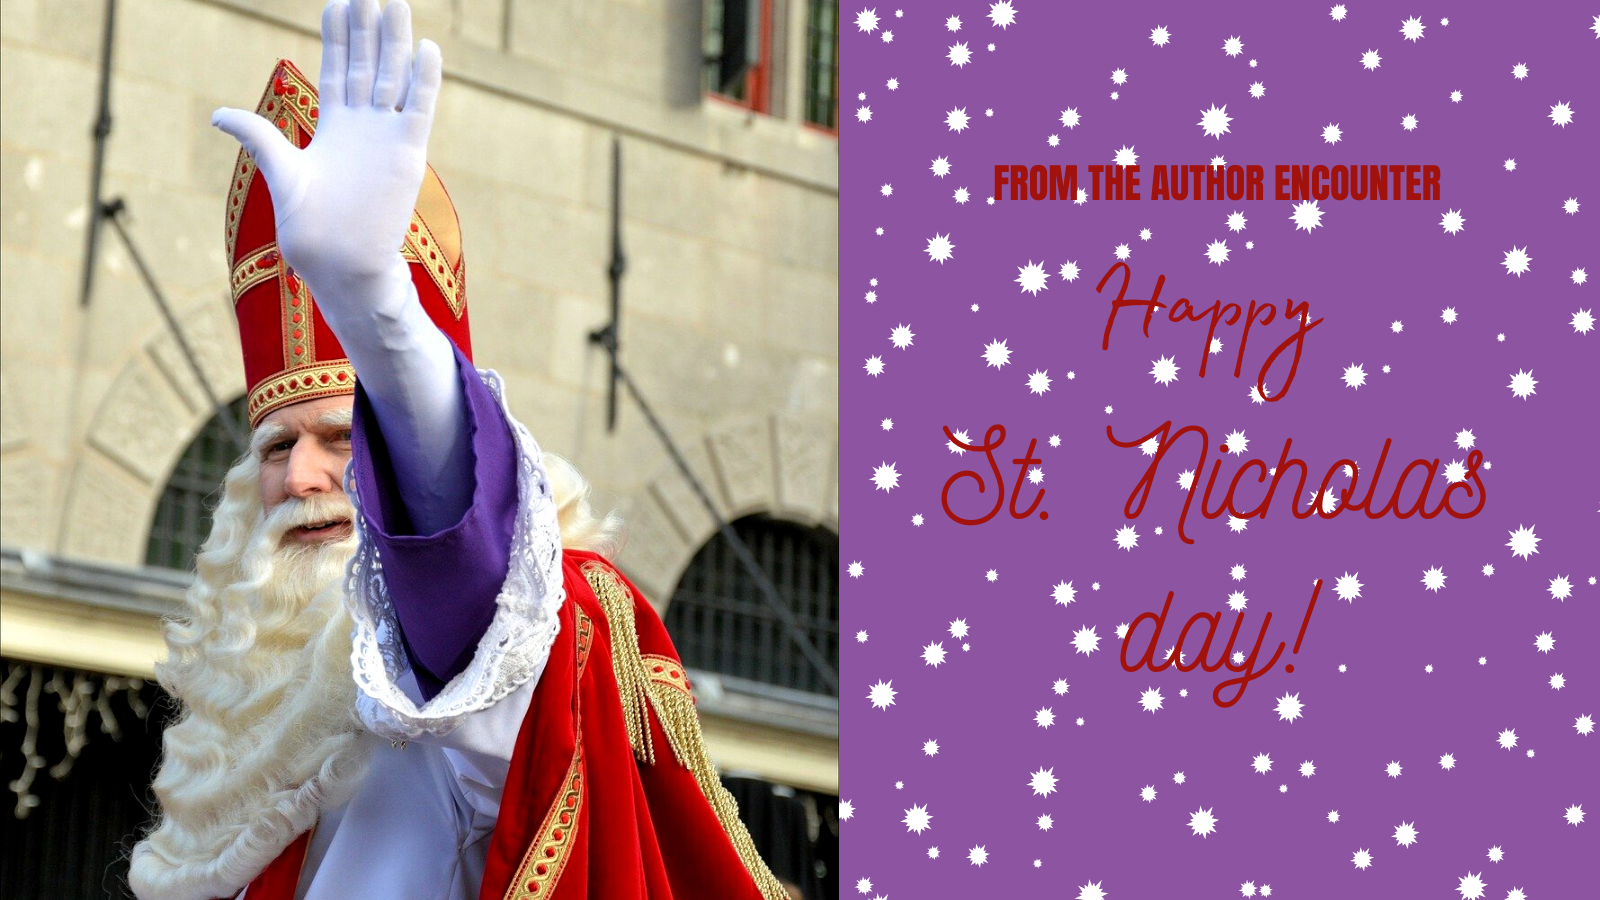 graphic for blog article about Saint Nicholas day